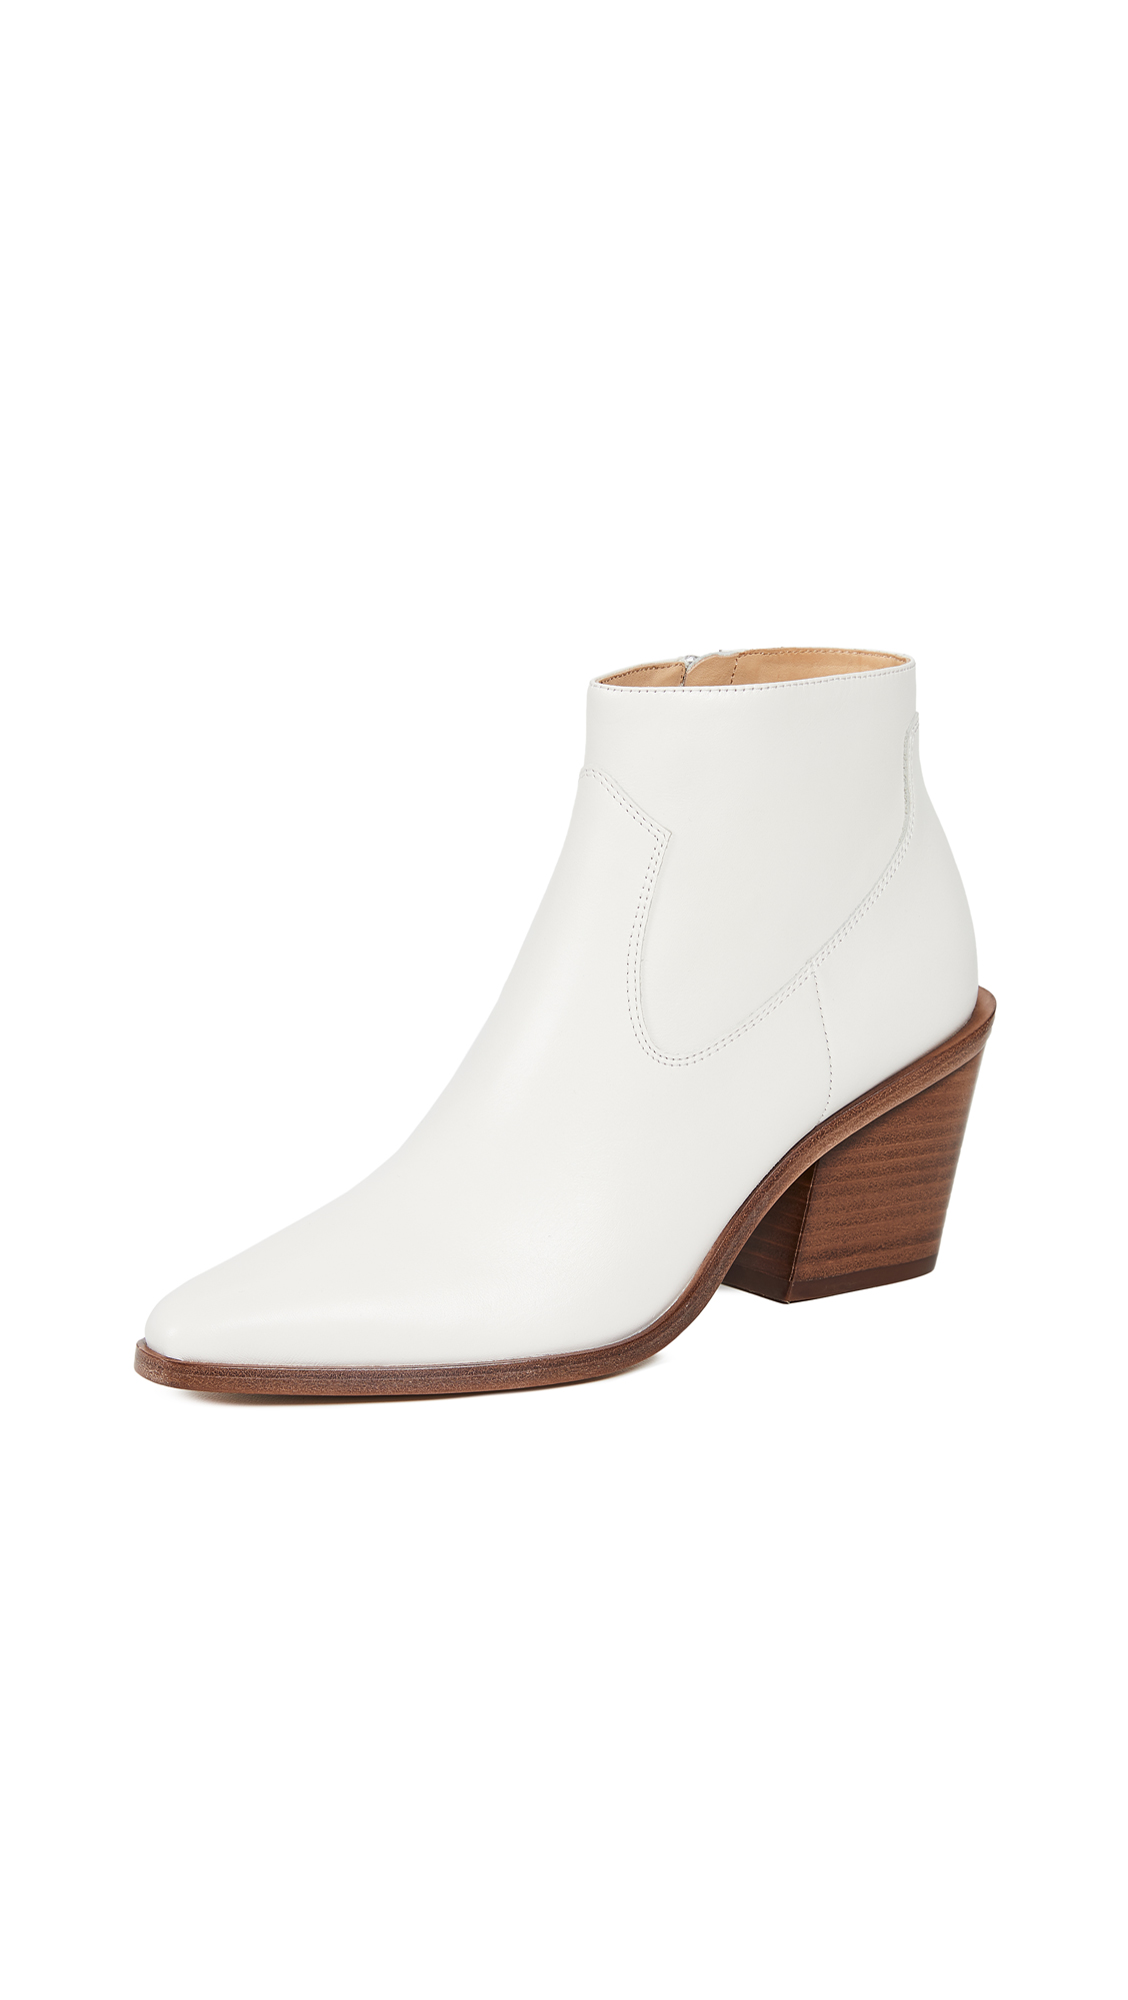 Rag & Bone Razor Booties - 65% Off Sale